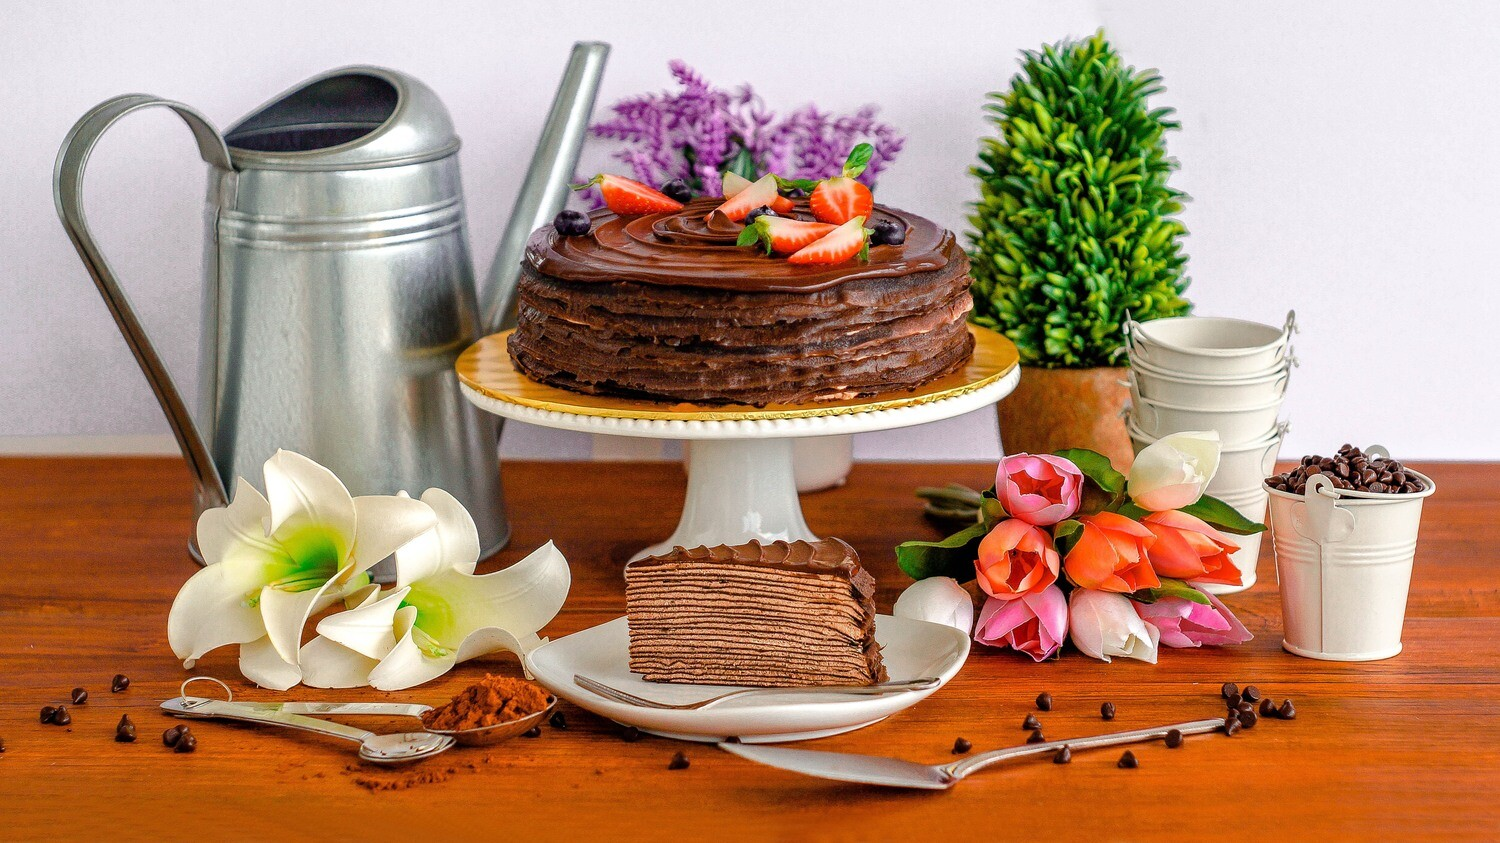 Triple Chocolate Crepe Cake (By: Junandus from KL)